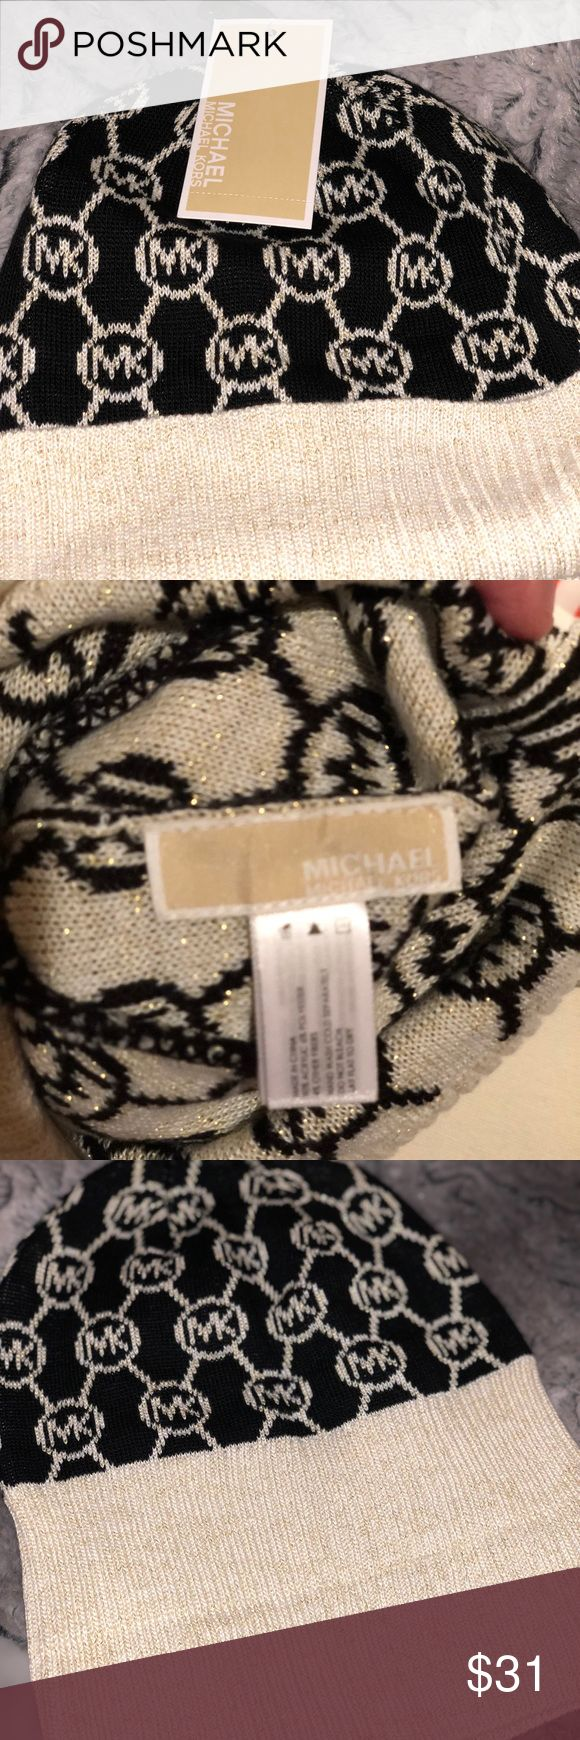 Michael Kors Logo Black/Cream/Metallic Gold Beanie NWT 💕 New With Tags.   Michael Kors Signature MK Logo, Fine Knit Beanie.    Features: * Color:  Black, Cream, & Sassy Metallic Gold.  * MK patterned logo knit beanie. * Double-folded cuffed hem. * One size fits most. * Acrylic Package Dimensions9.8 x 8.7 x 0.3 inches & 0.64 ounces Department-Womens  MK logo beanie is a stylish way to stay warm in cold weather. It will deliver a sassy and classy touch to any cute outfit!!  Add MK to your…